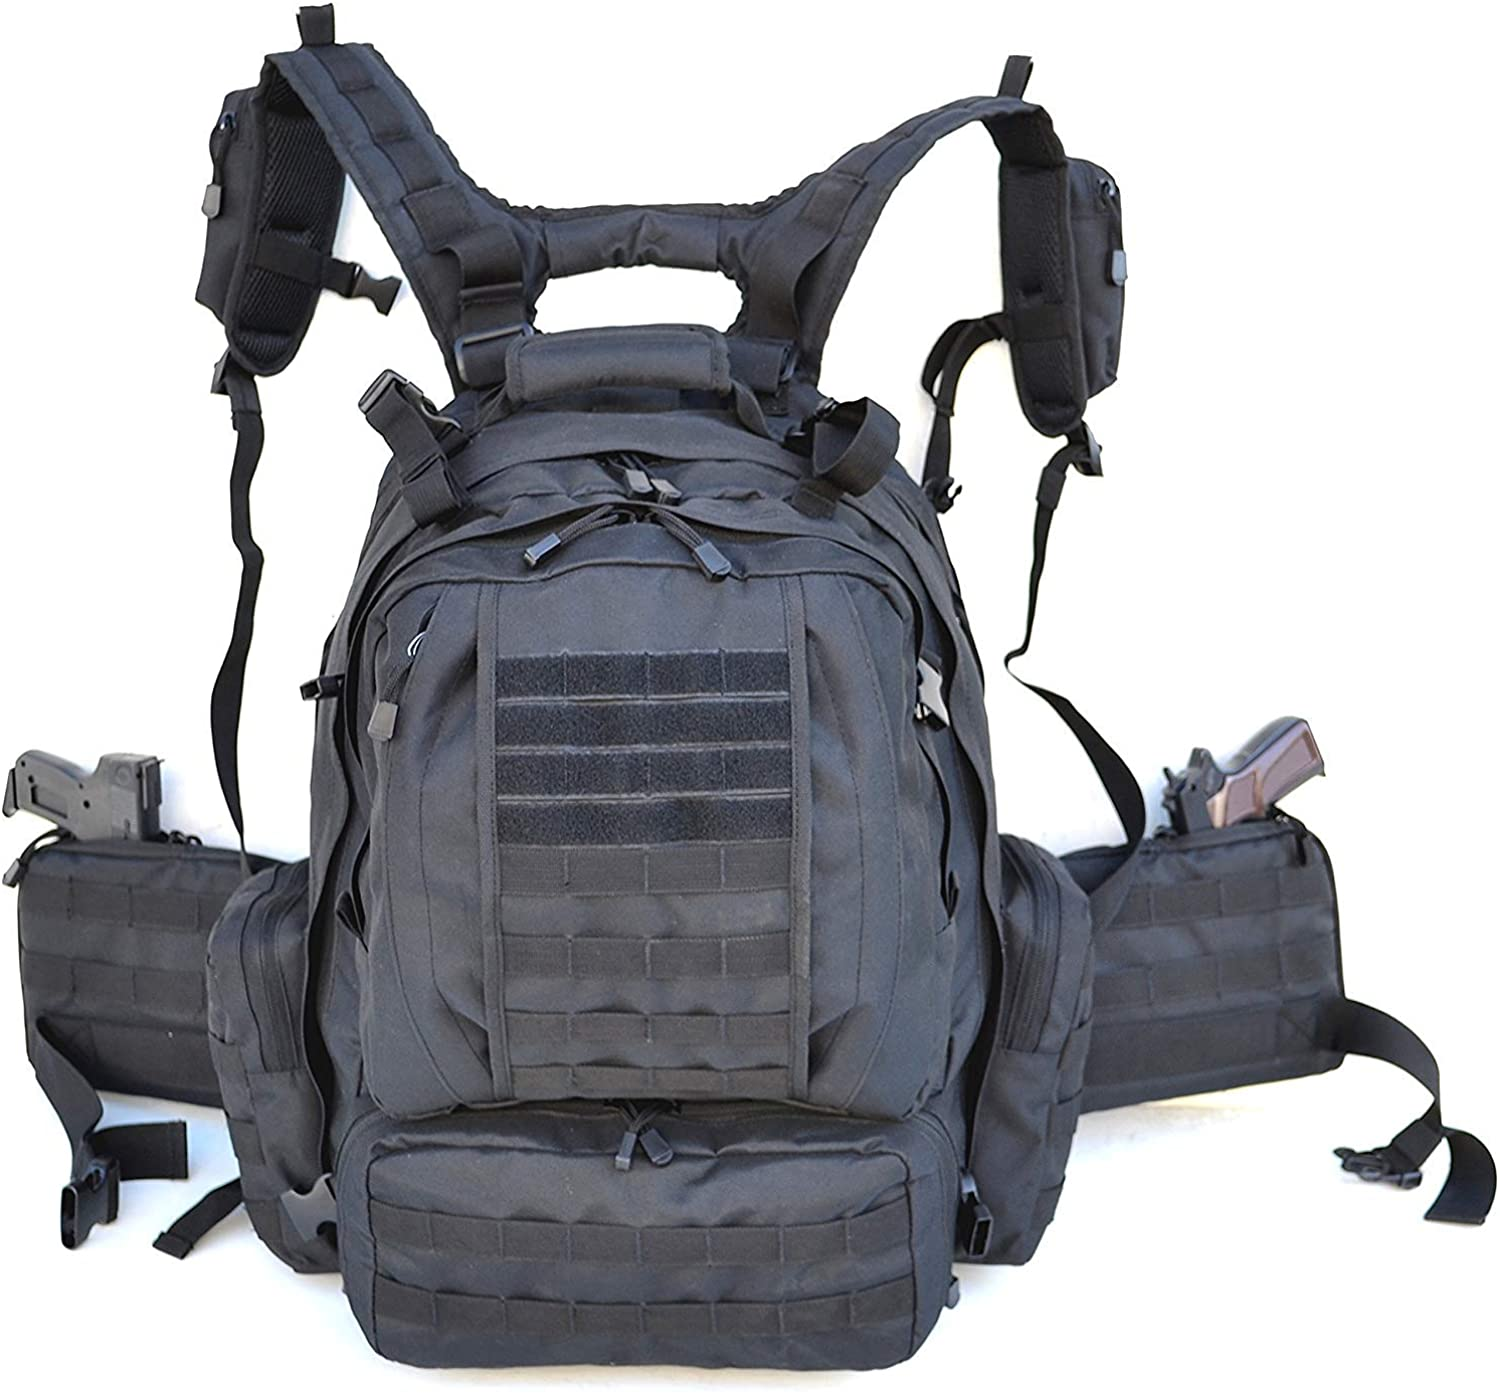 EXPLORER Military Tactical Backpack Army Assault Pack Molle Bug Out Bag Backpacks Rucksack Day pack